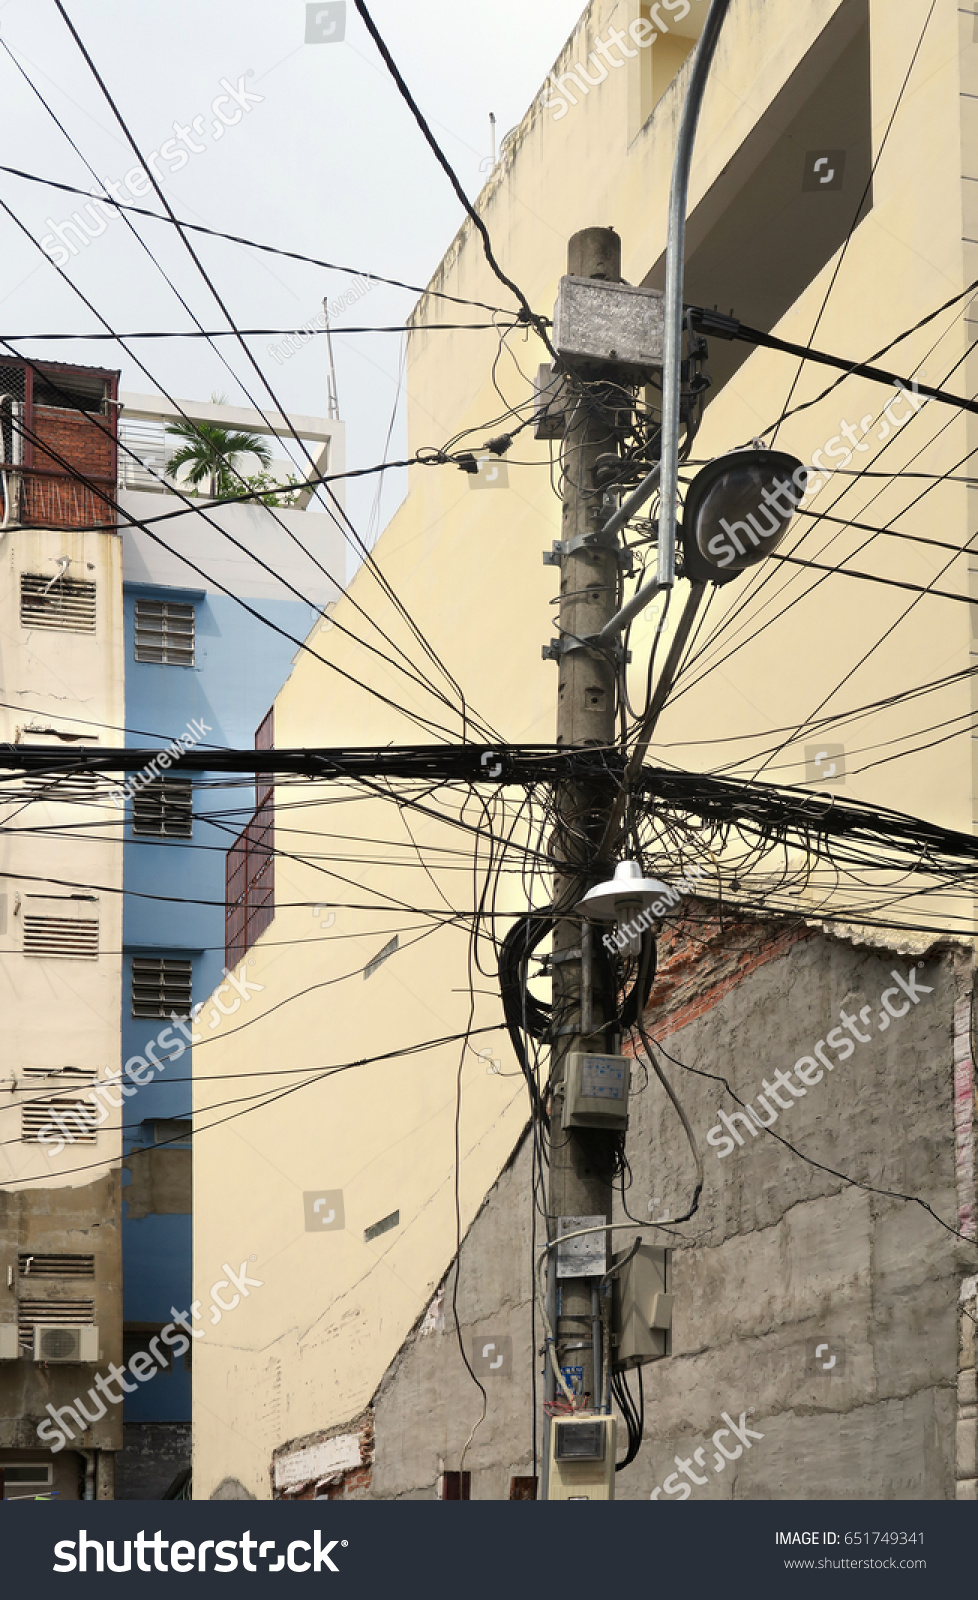 medium resolution of residential power supply tangled wires on a telephone pole for supplying neighboring apartment buildings with electricity in downtown saigon vietnam